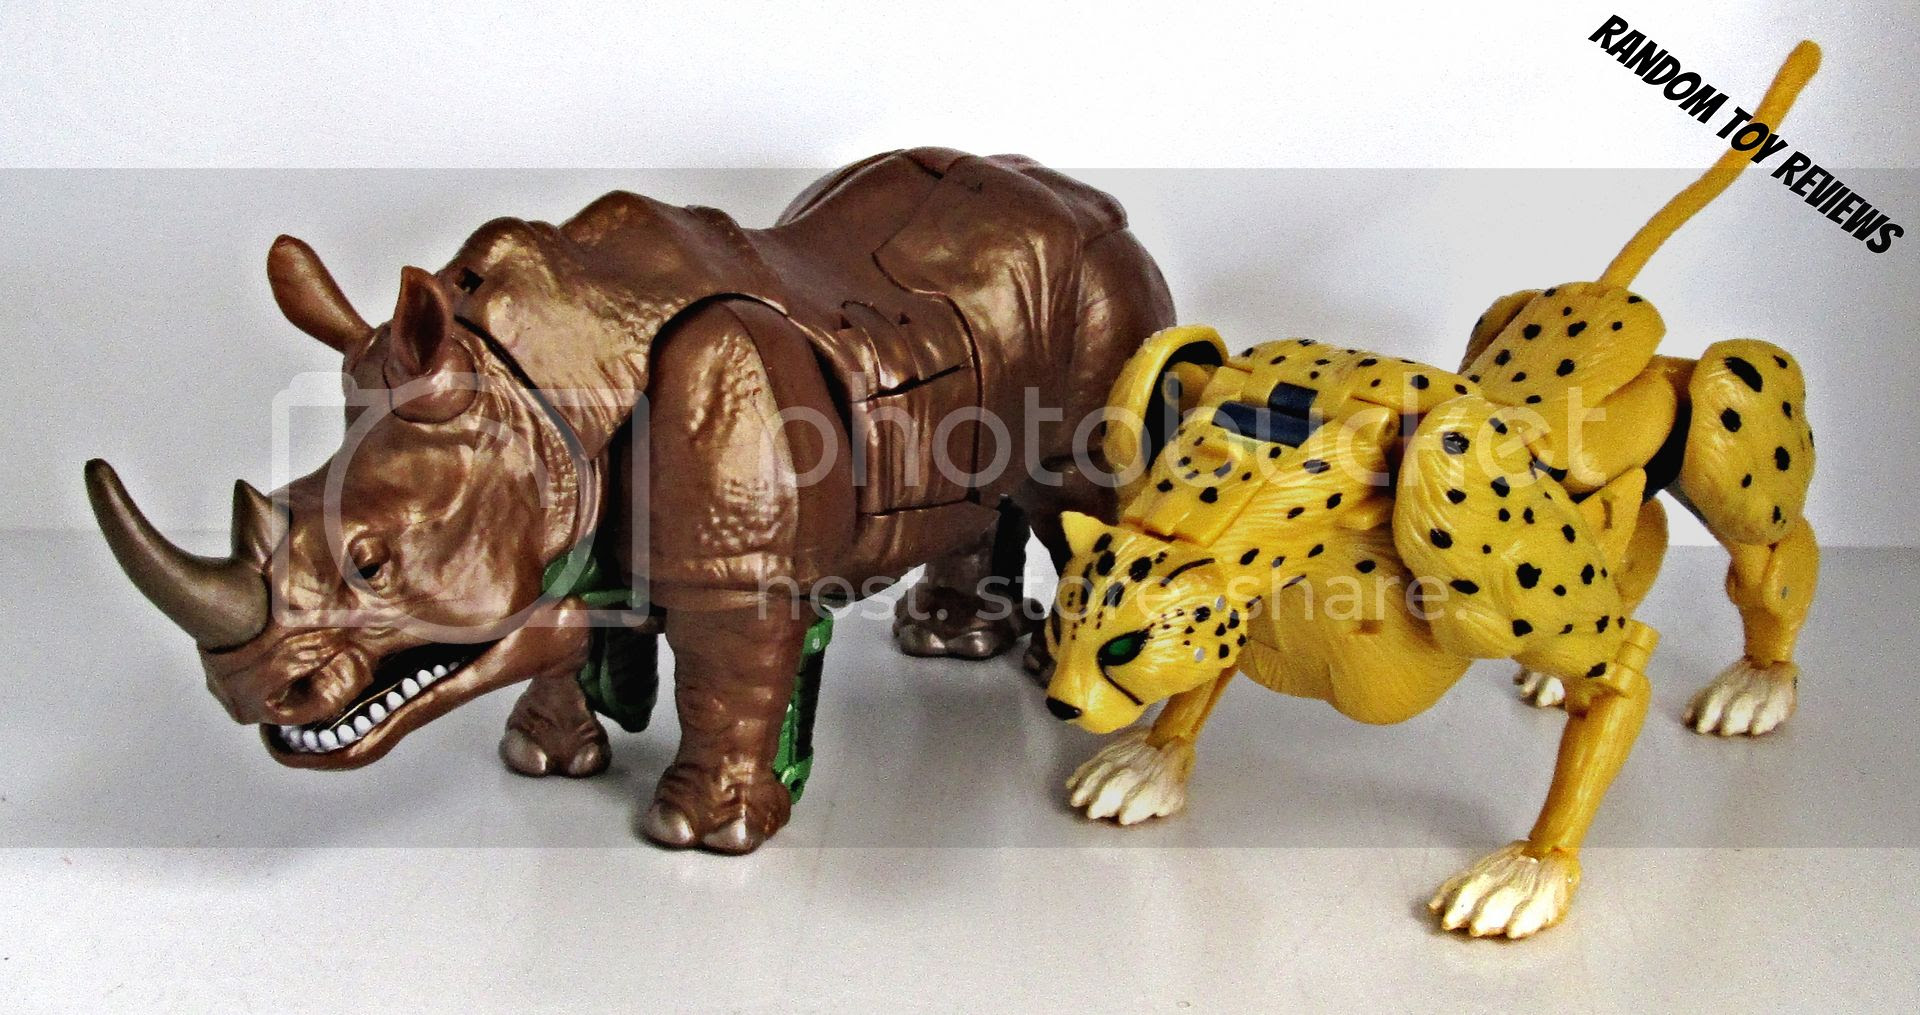 Generations Rhinox & Cheetor photo Rhinox023_zps4e68a49c.jpg